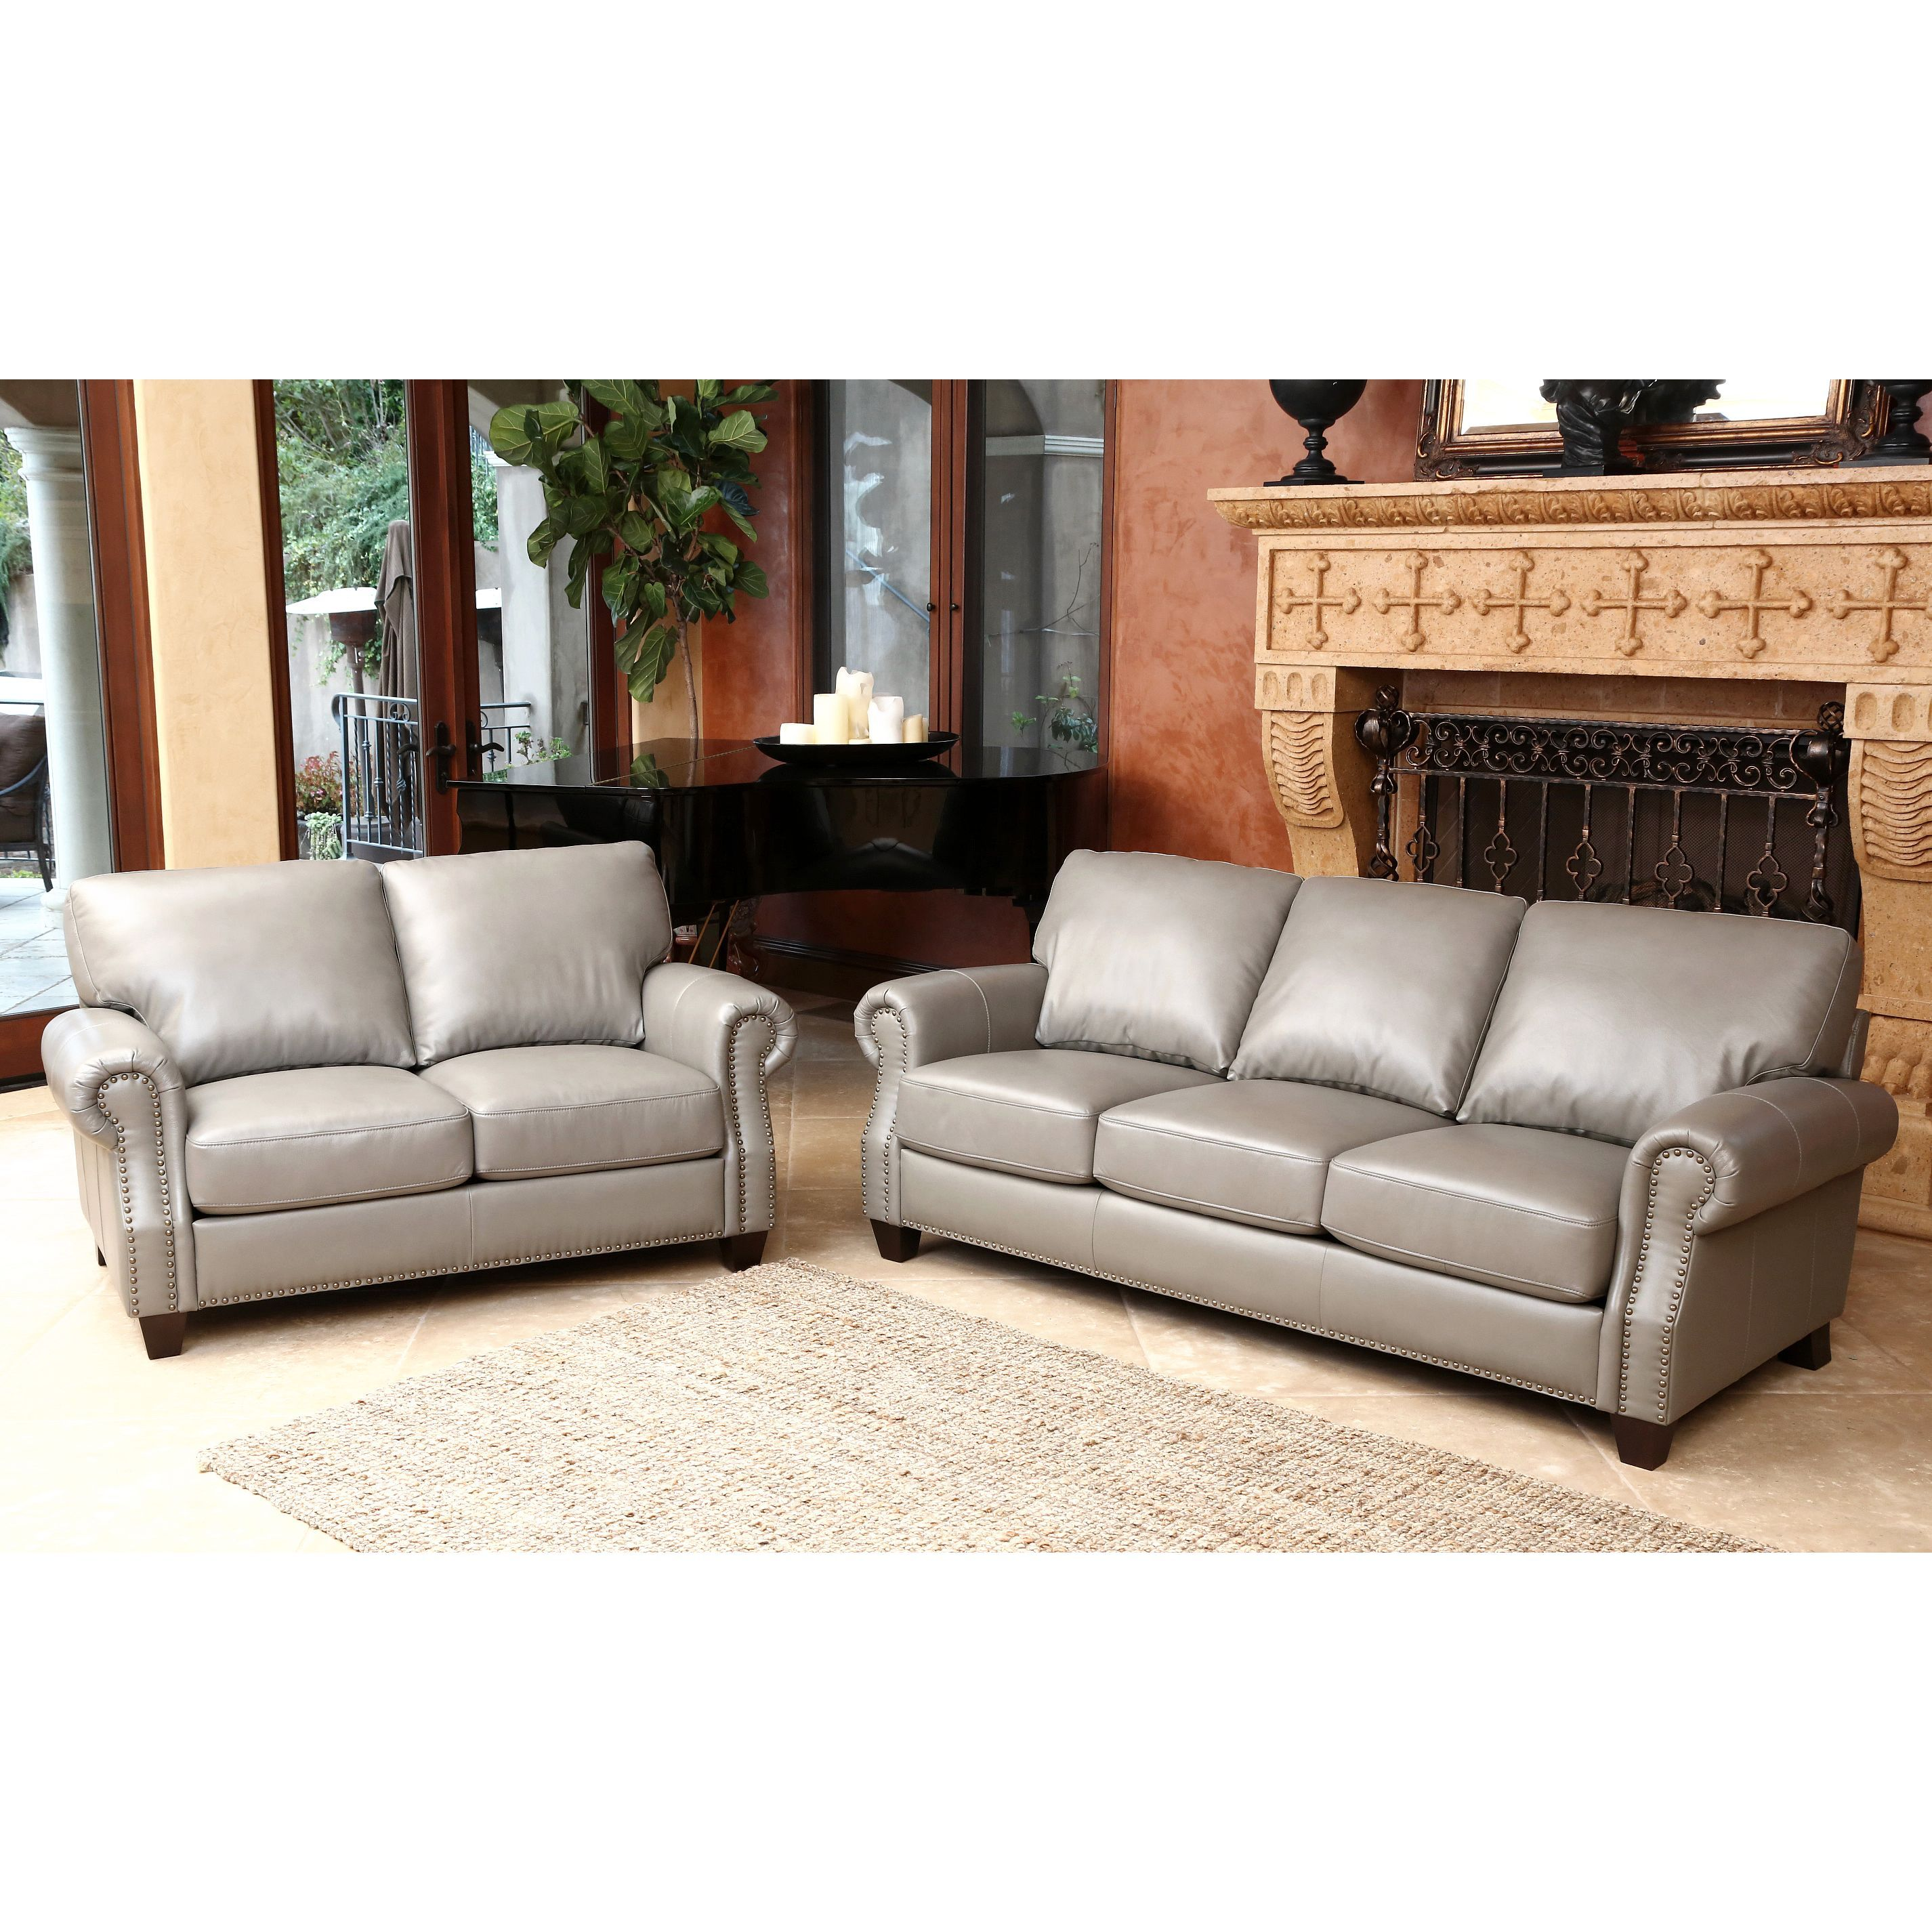 Leather Nailhead Sofa Set Best Sectional Recliners Grey Top Grain Gives This Abbyson Living Landon